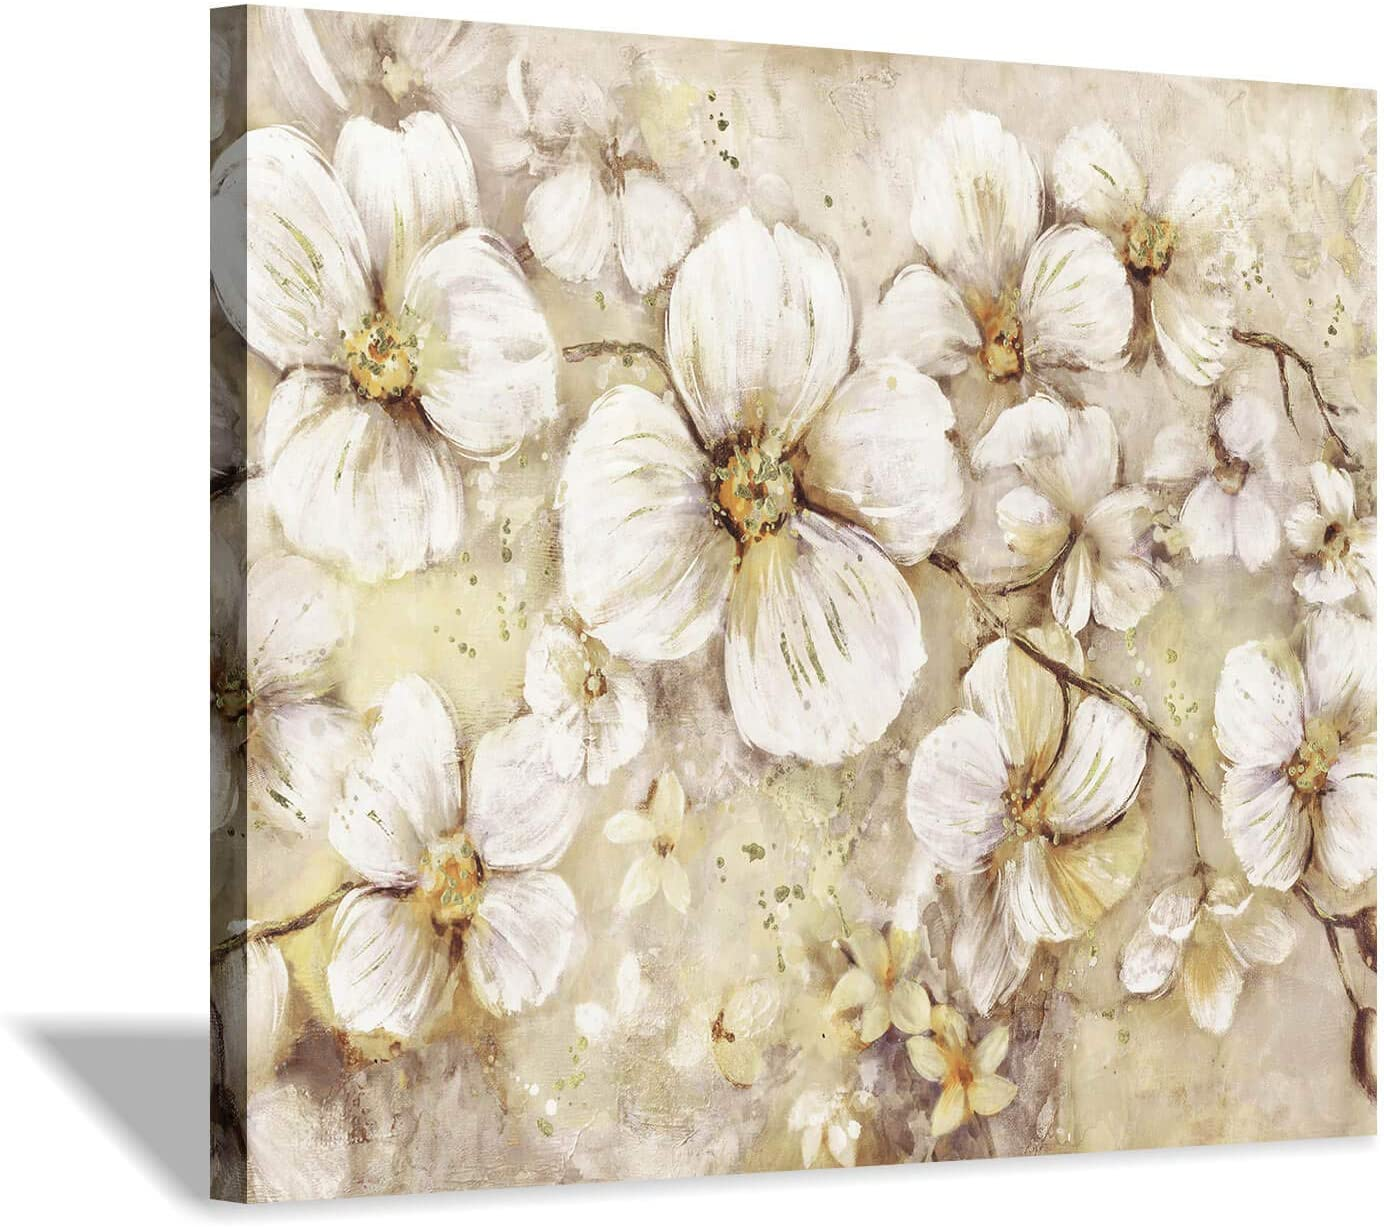 2Pcs Flowers Painting Picture DIY Wall Art Poster Decor for Bedroom Office